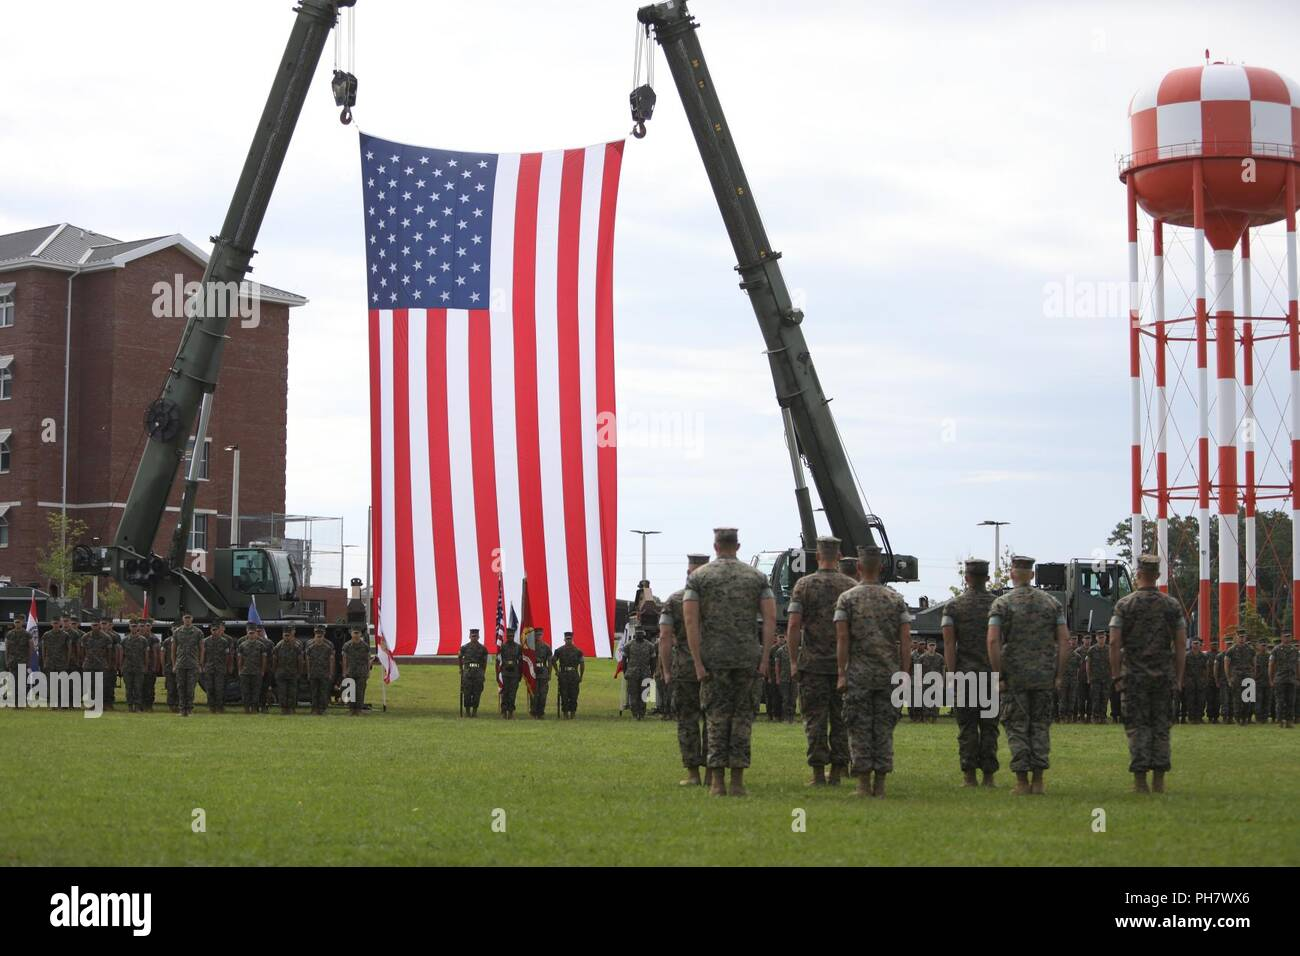 U.S. Marines assigned to 2nd Marine Expeditionary Force conduct a retirement ceremony for Maj. Gen. Niel E. Nelson, deputy commanding general of Marine Corps Combat Development Command at Camp Lejeune, N.C., June 26, 2018. The ceremony was held in honor of Maj. Gen. Nelson's 35 years of honorable meritorious service. Stock Photo